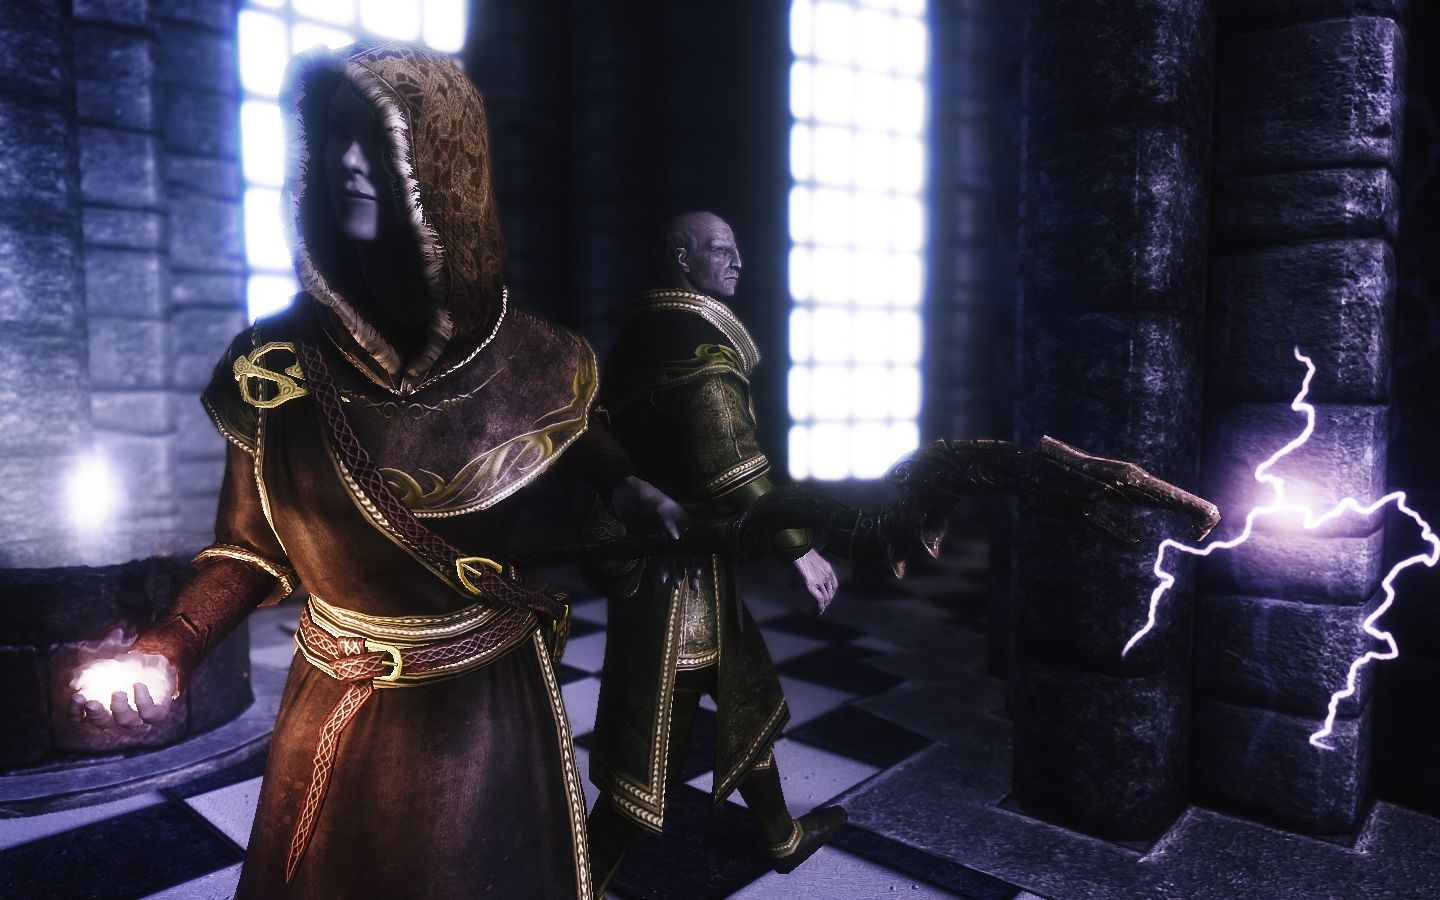 Opulent Outfits - Mage Robes of Winterhold v6 at Skyrim Nexus